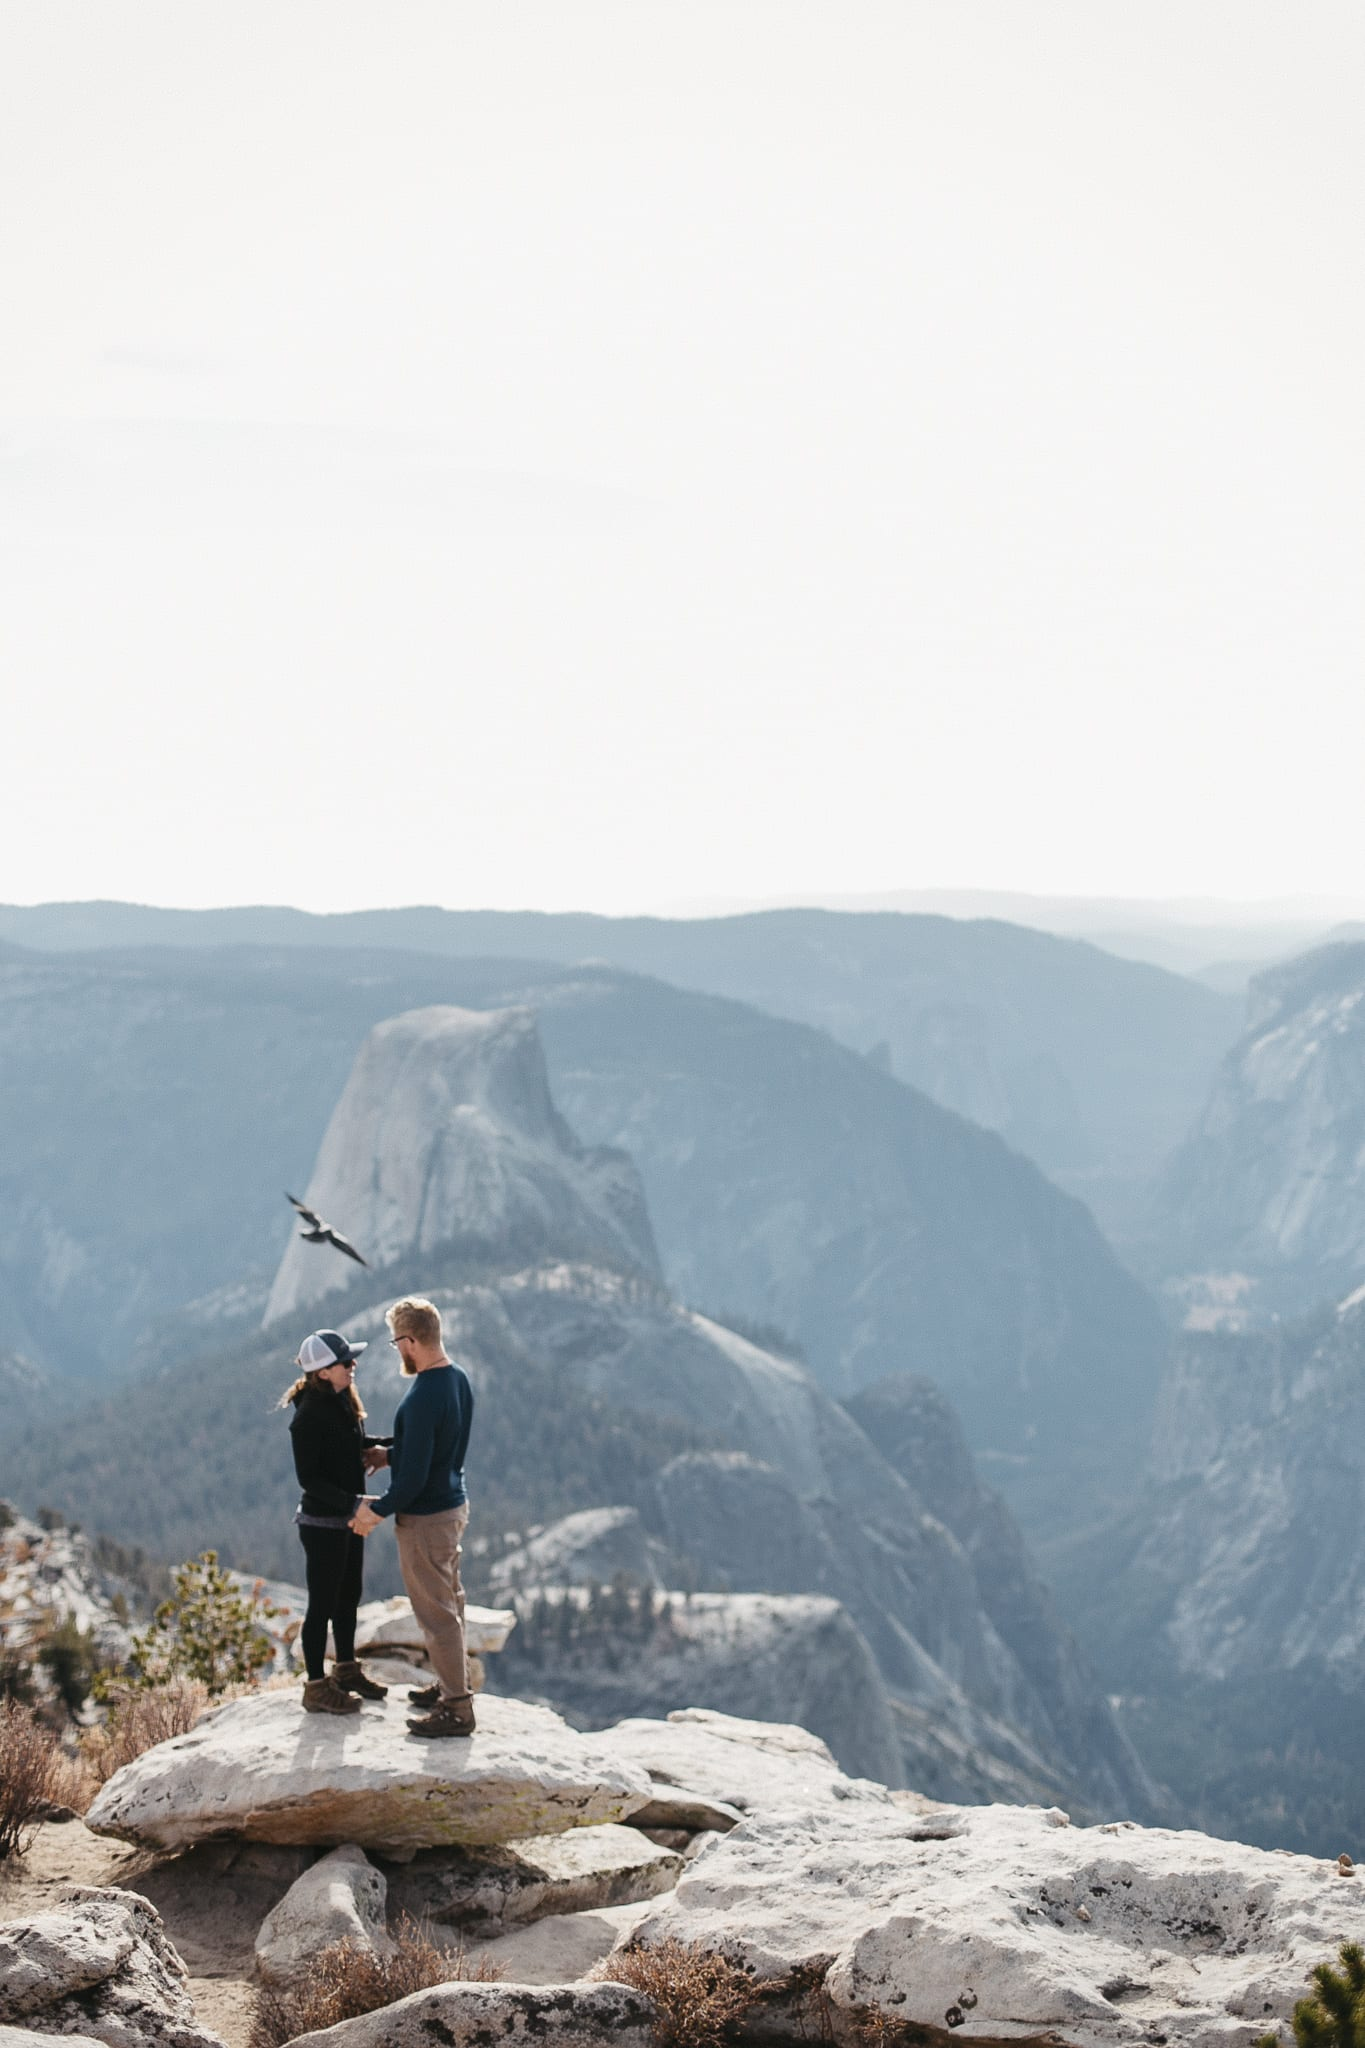 clouds-rest-yosemite-california-engagement-lifestyle-adventure-photographer-21